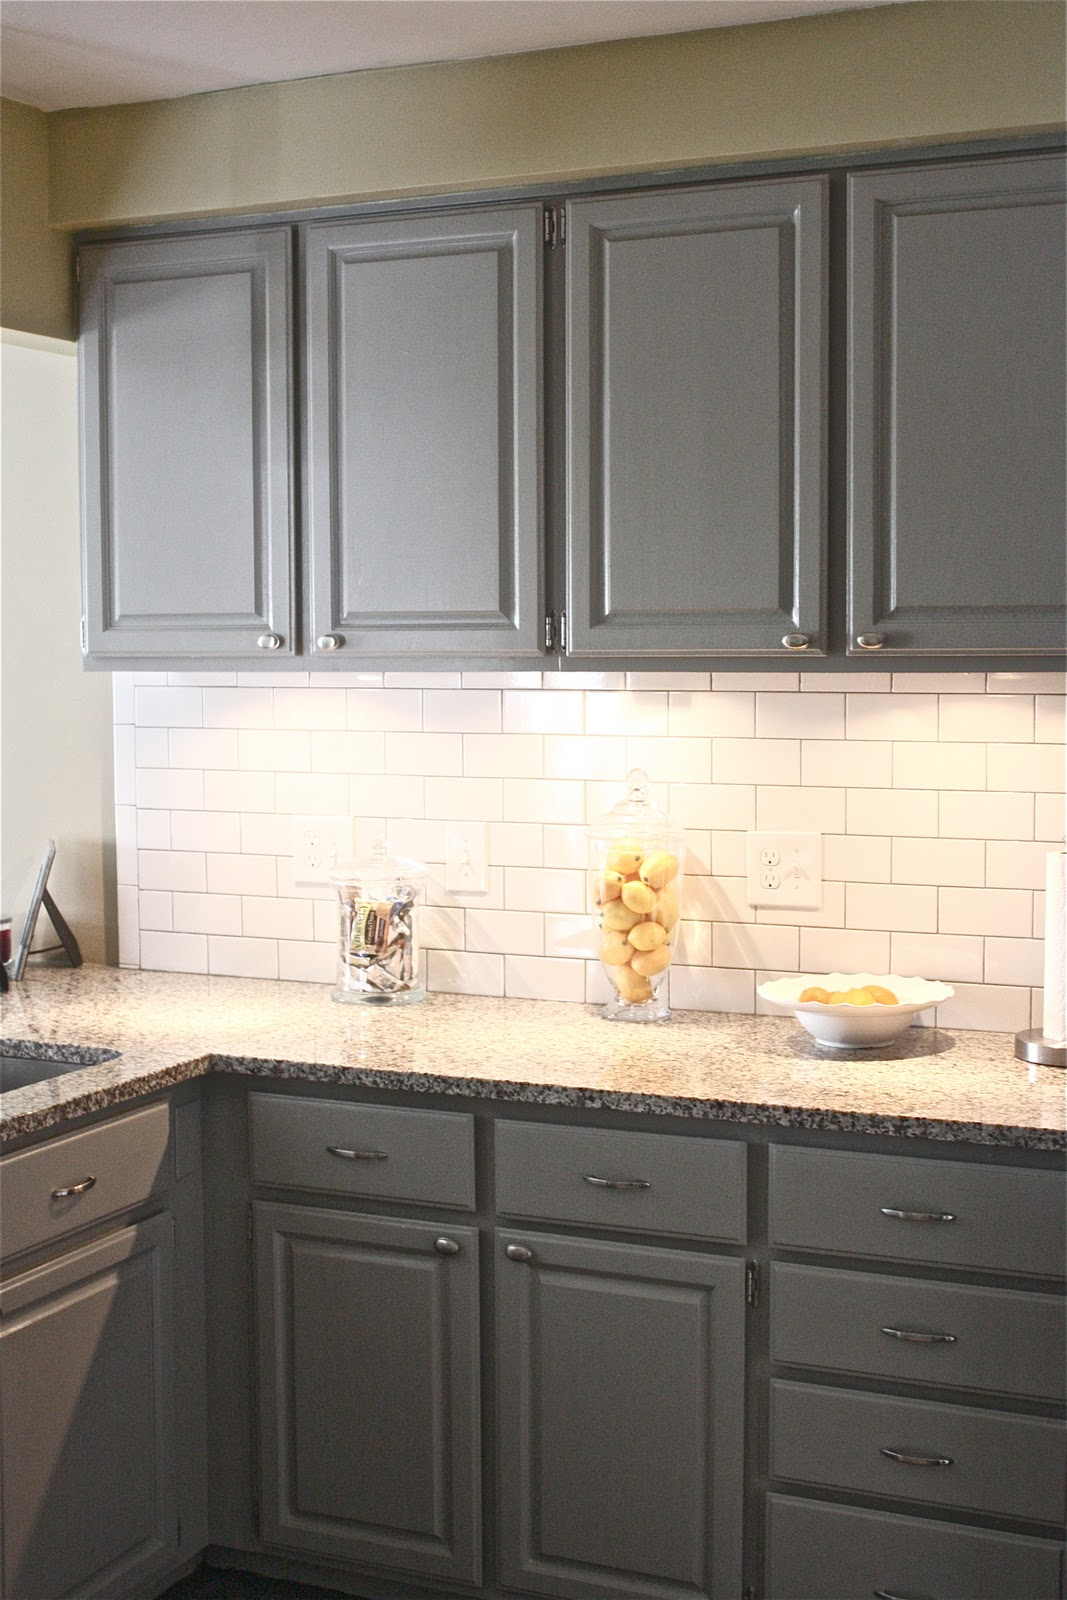 Black kitchen cabinets and cream floor tiles best home for Kitchen cabinets gray